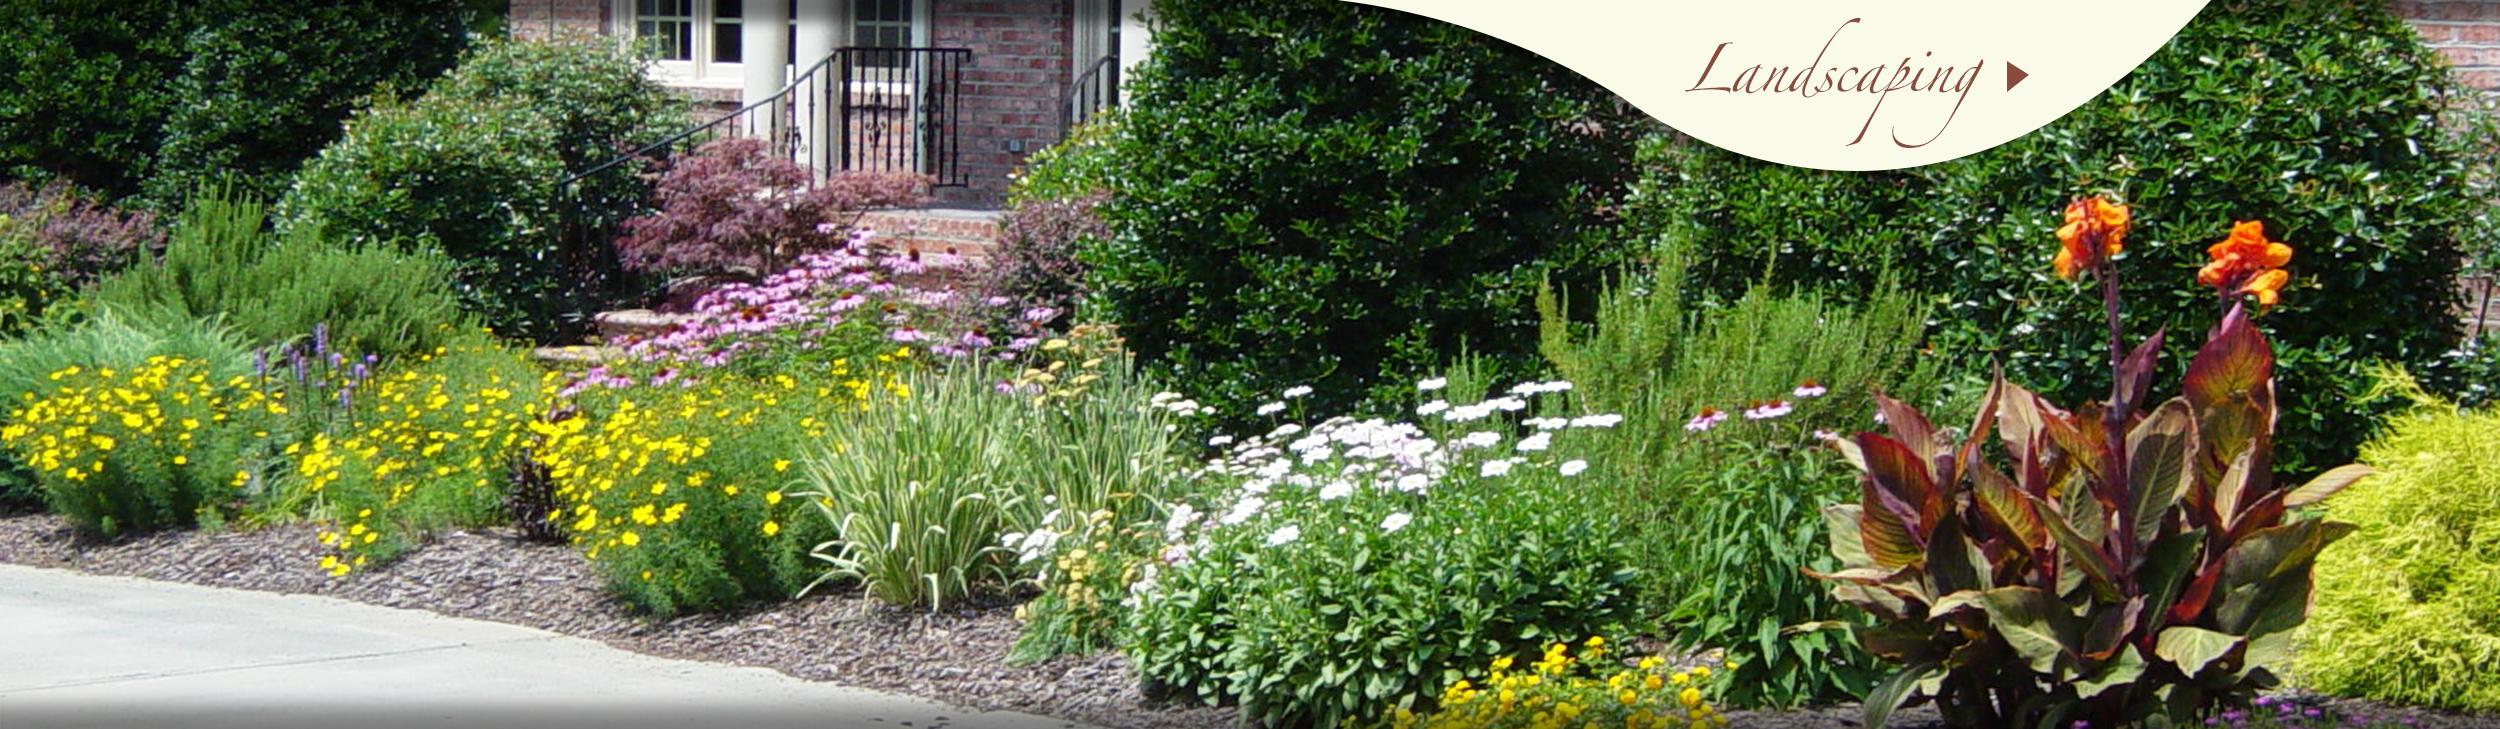 Landscape design raleigh nc for Landscape design raleigh